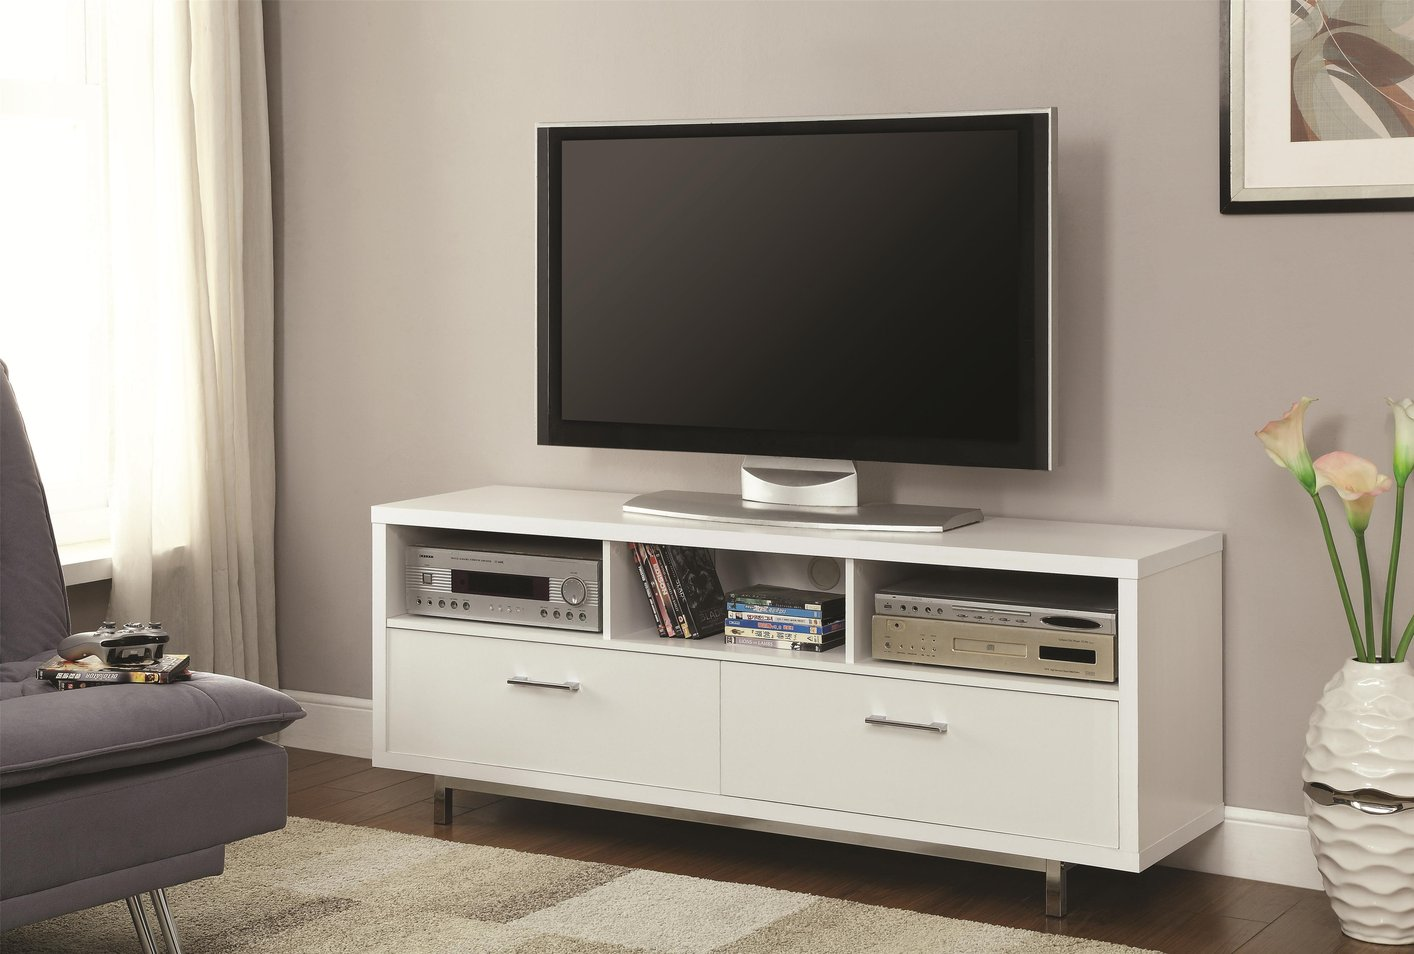 Coaster 701972 White Metal Tv Stand Steal A Sofa